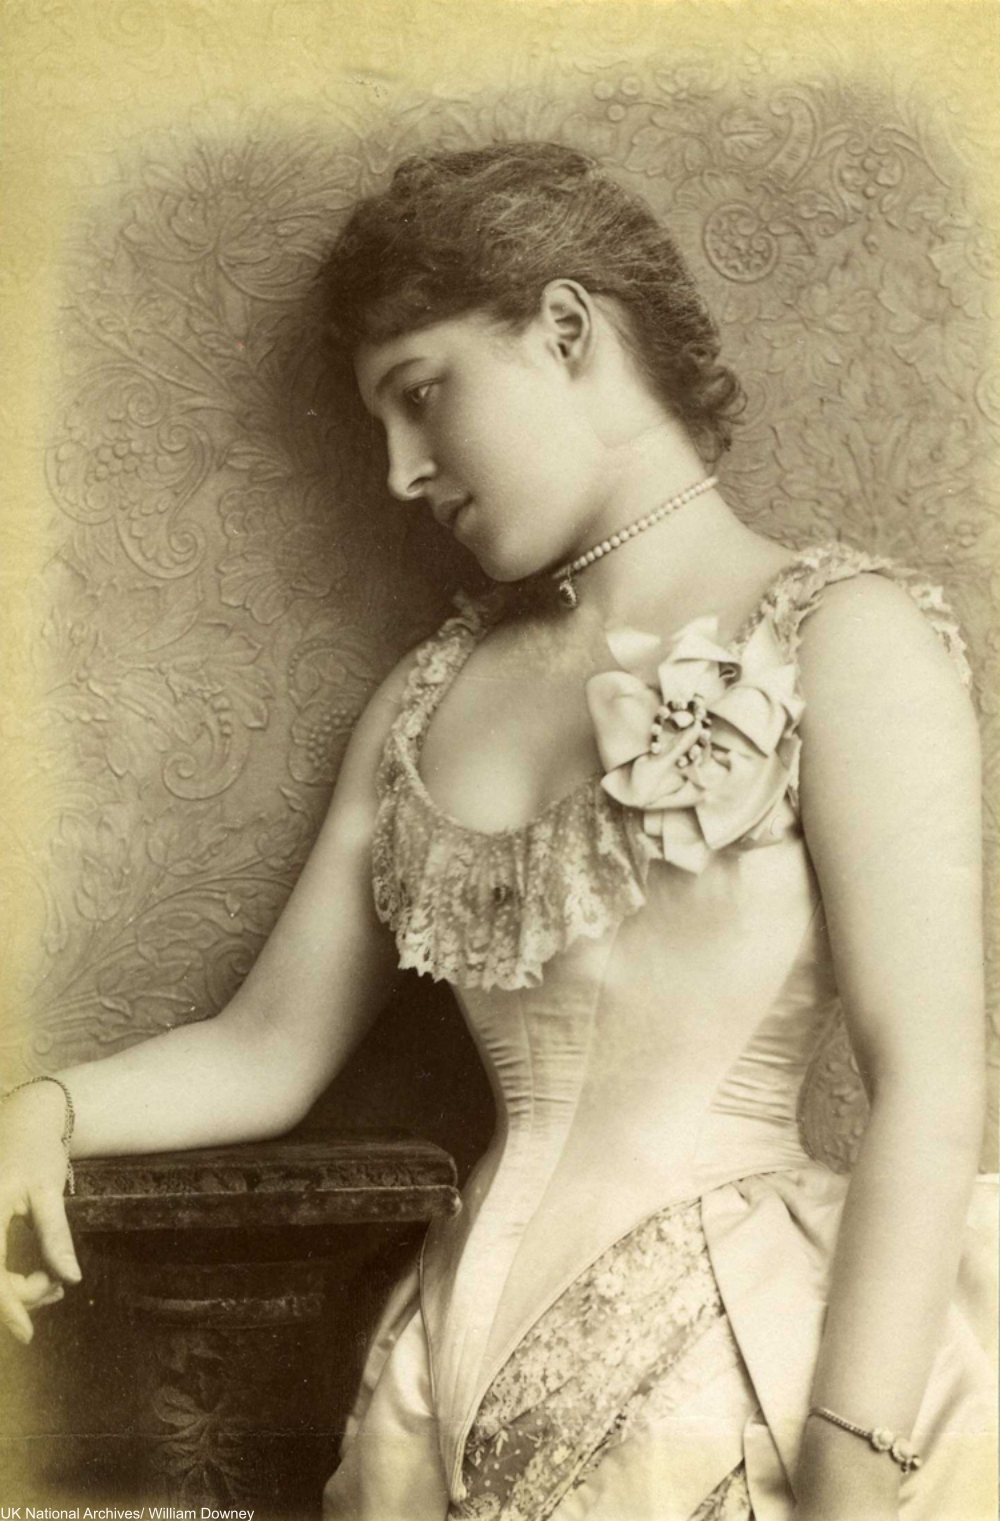 Lillie Langtry in 1885